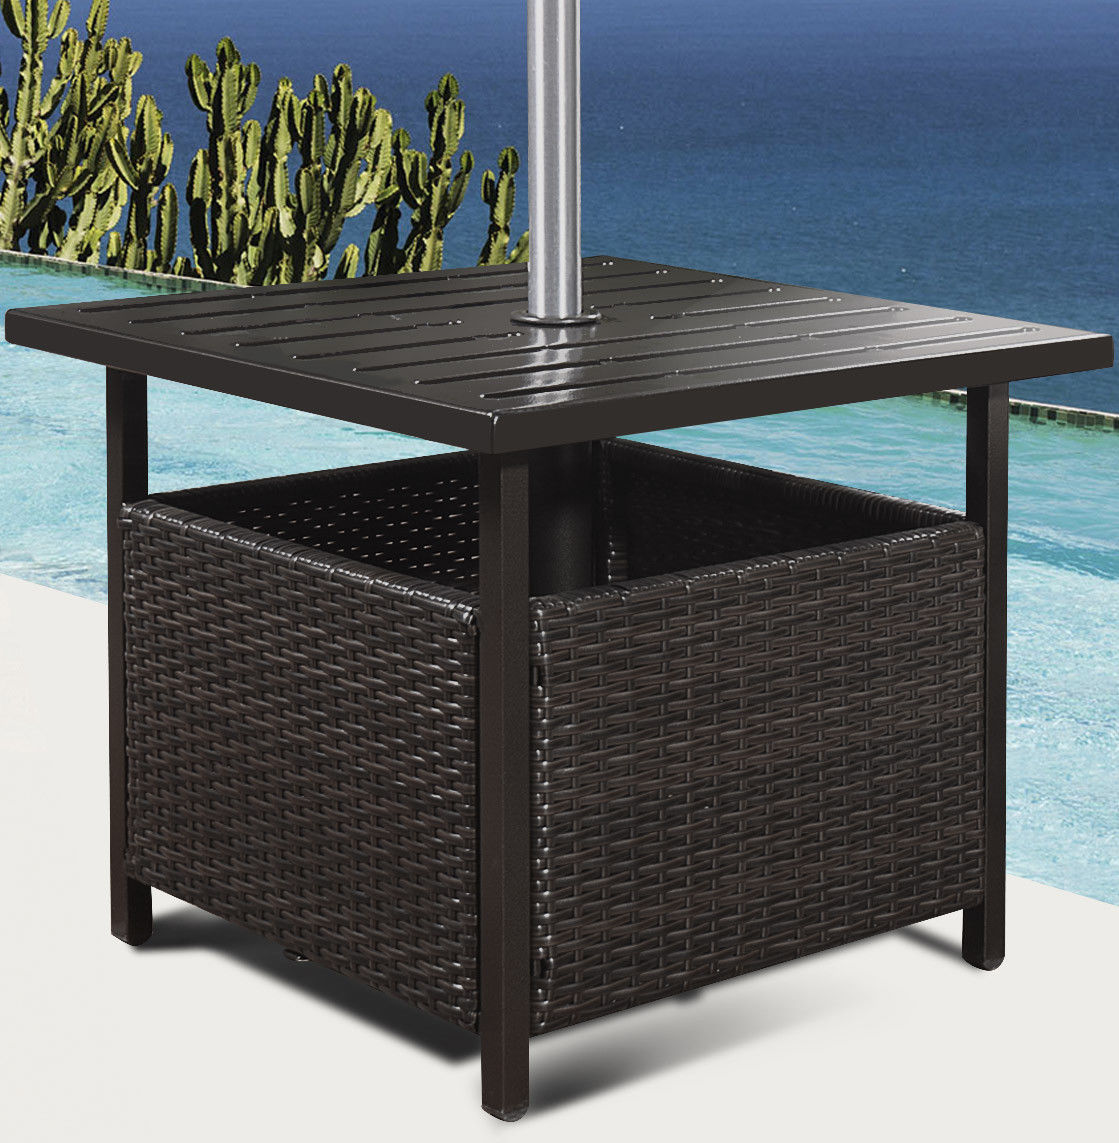 Rattan Table Costway Brown Rattan Wicker Steel Side Table Outdoor Furniture Deck Garden Patio Pool